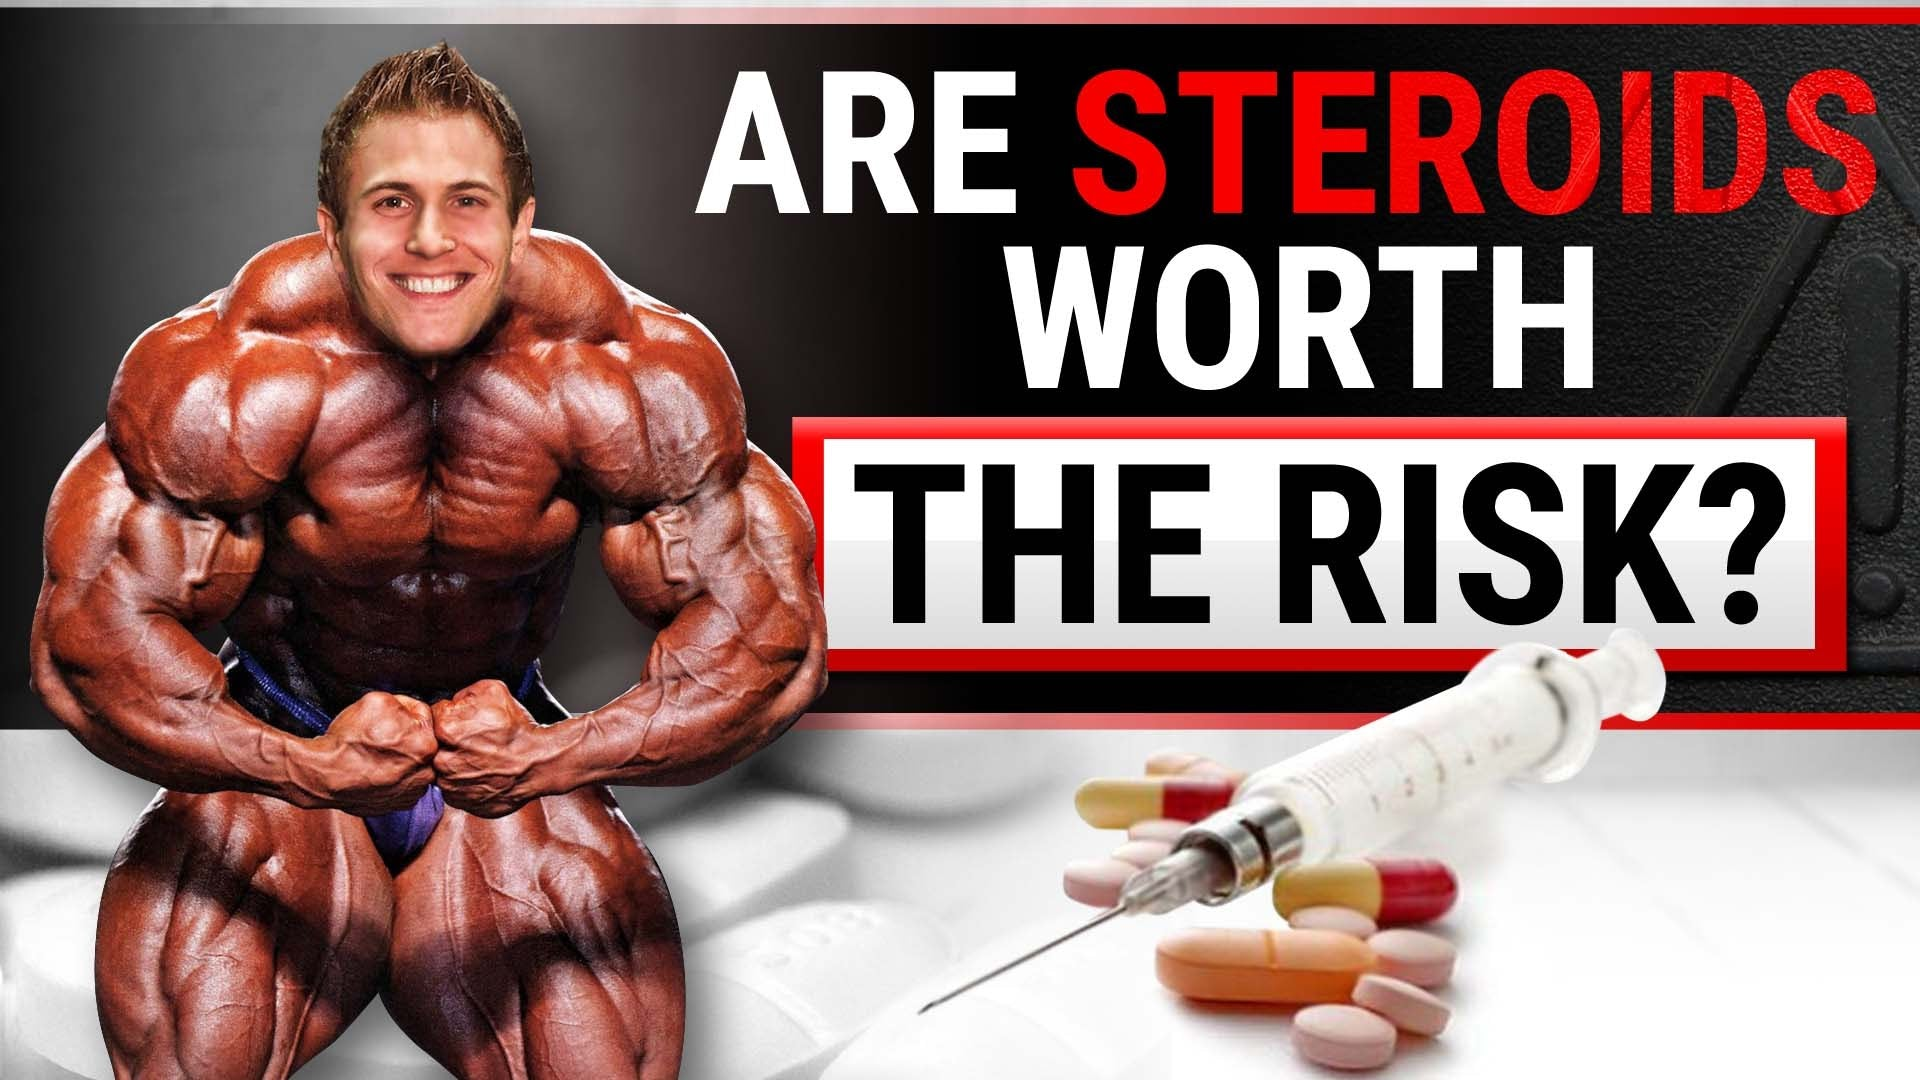 What Happens When You Take Steroids?